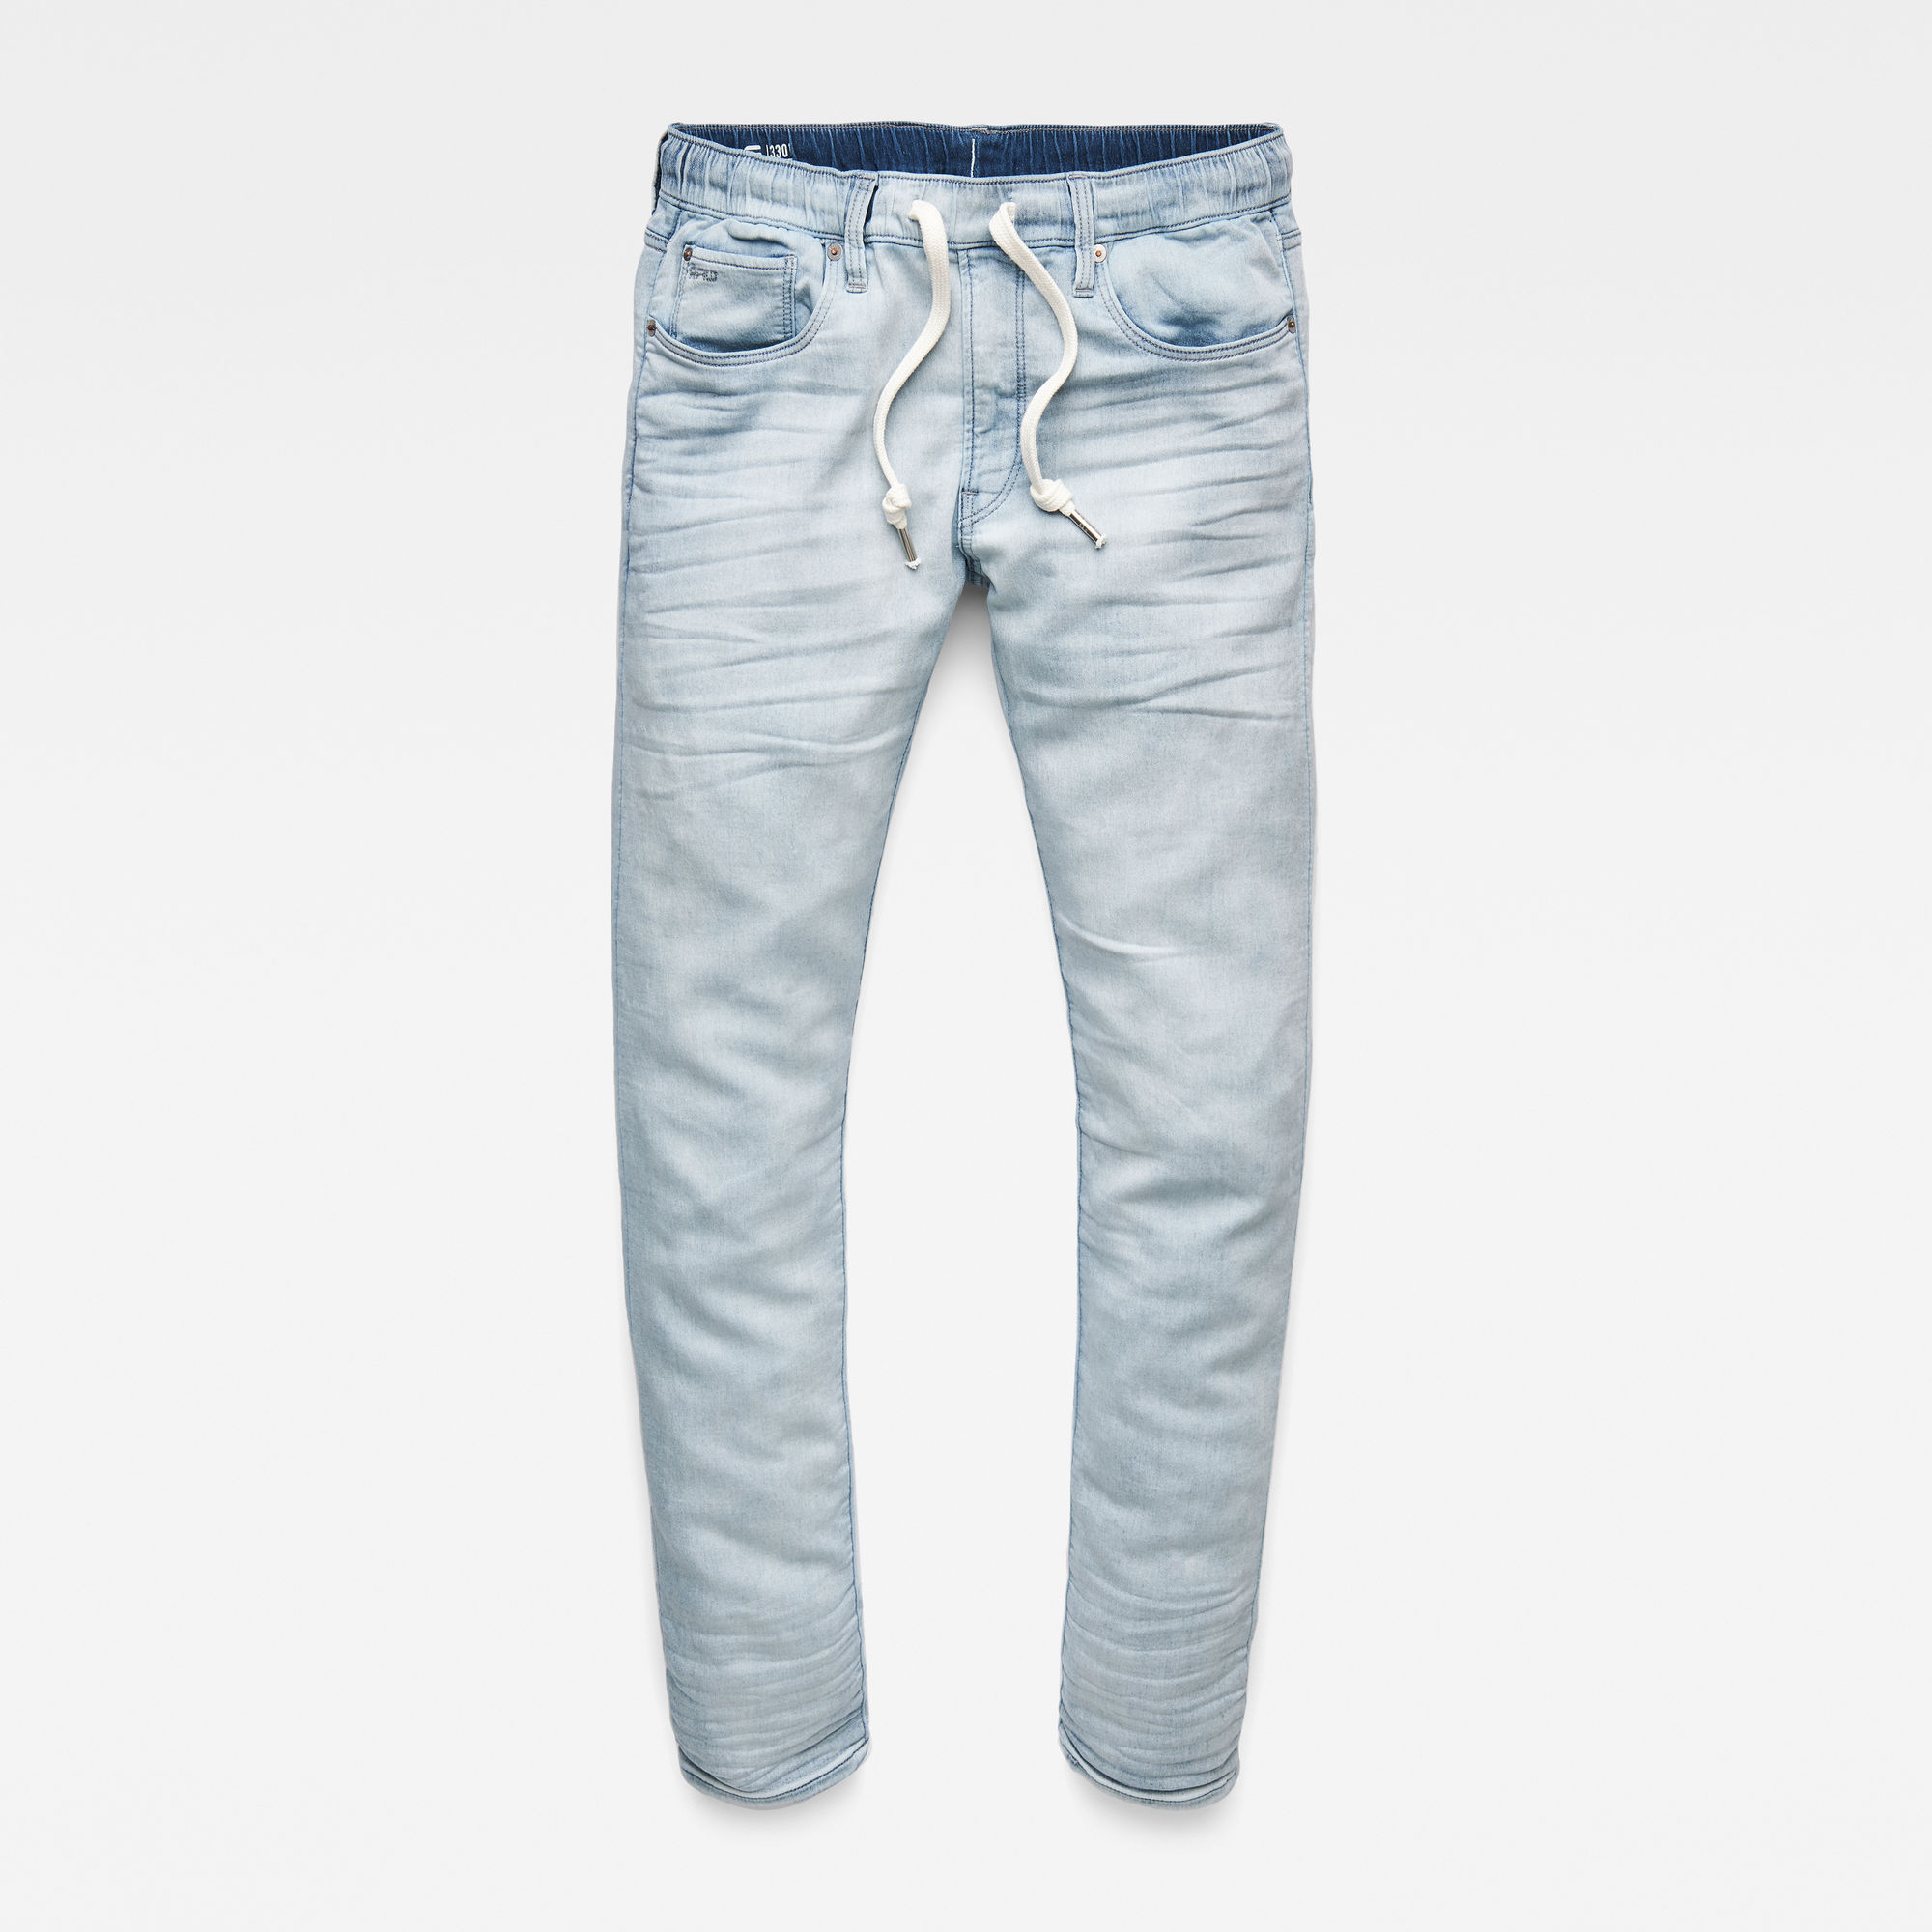 Image of G Star Raw 3301-R Sport Slim Jeans